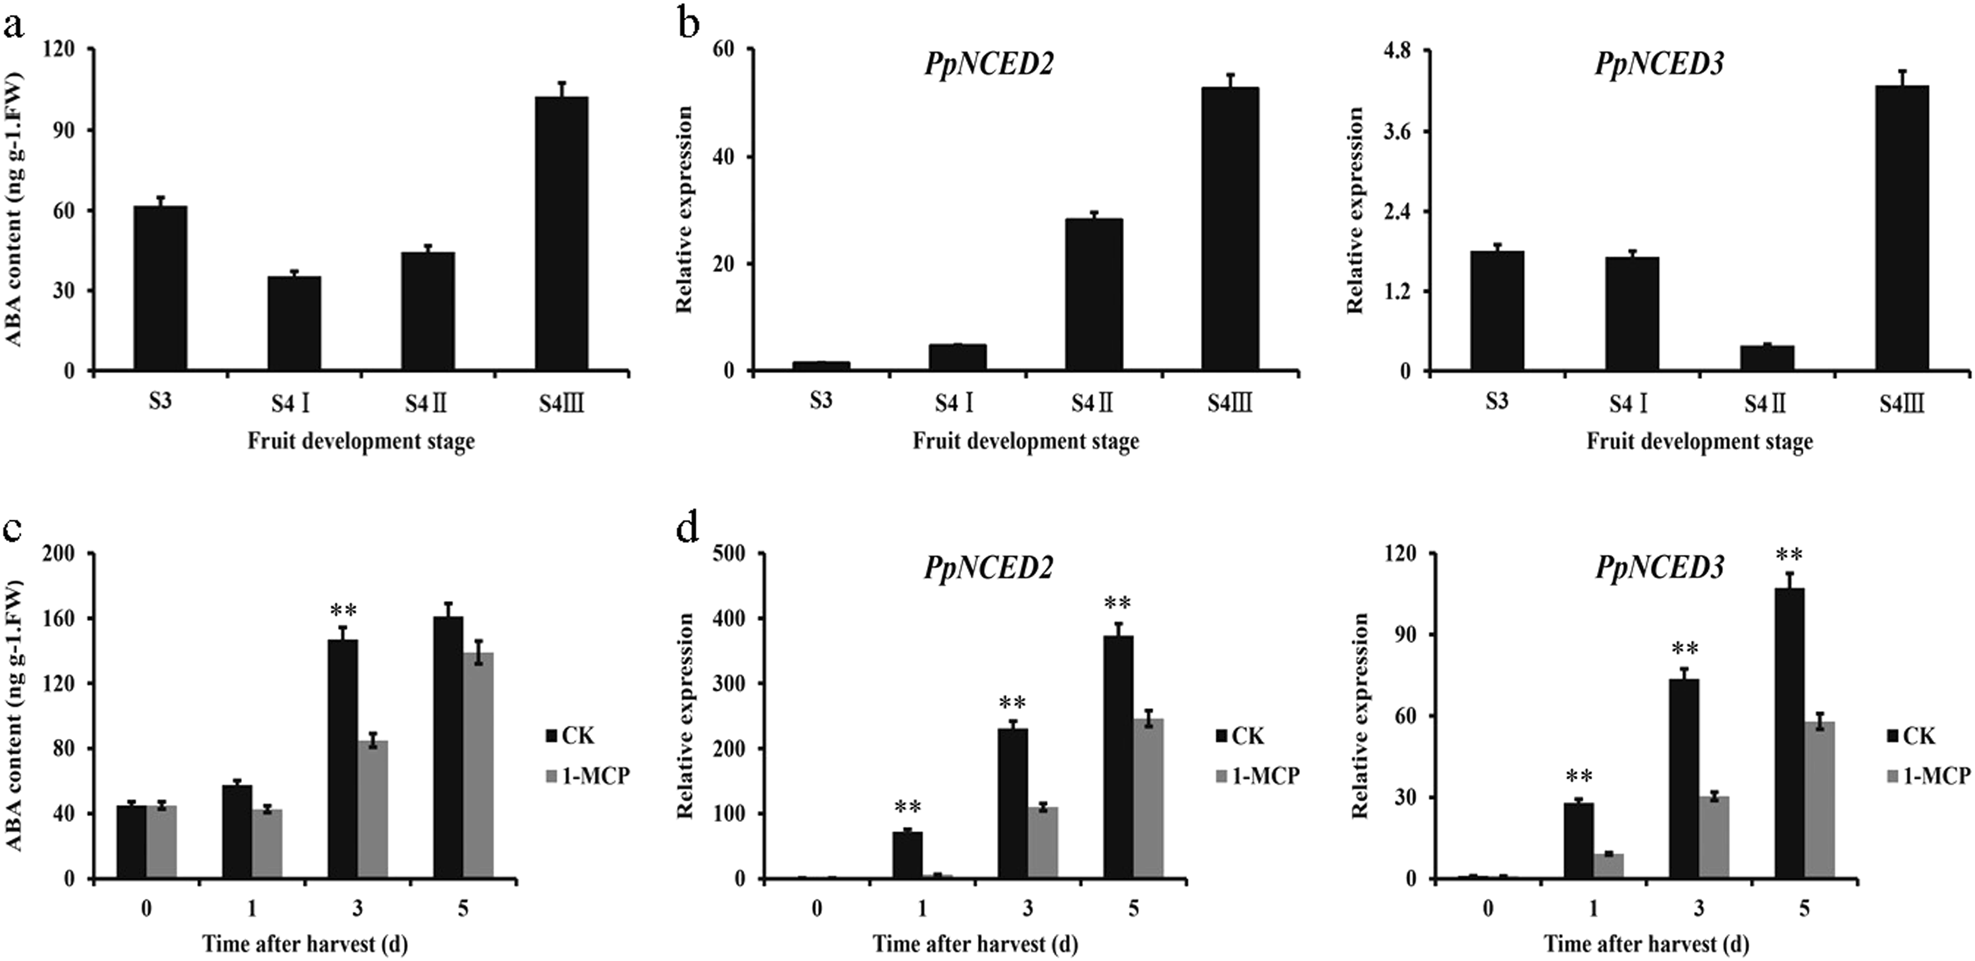 Aba Releases Findings And >> Pperf3 Positively Regulates Aba Biosynthesis By Activating Ppnced2 3